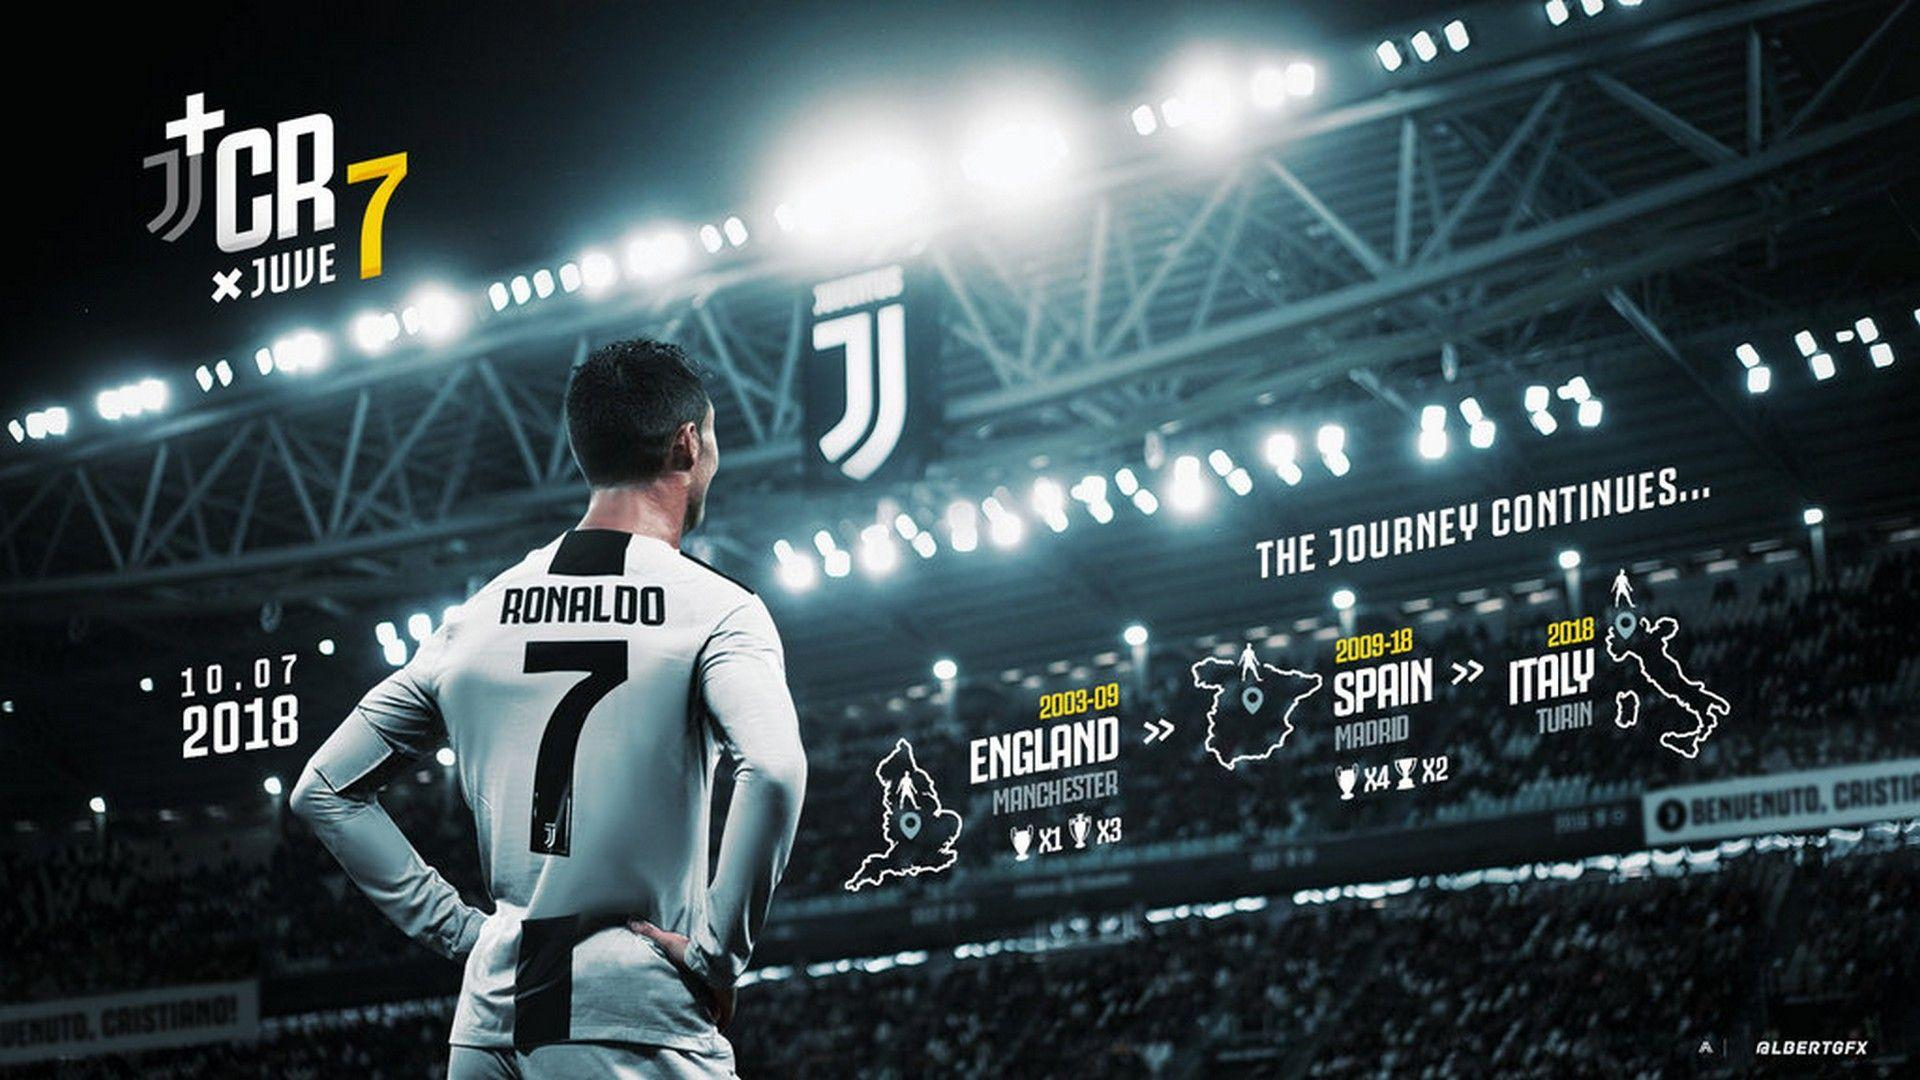 Cr7 Wallpaper Hd: CR7 Juventus Wallpapers